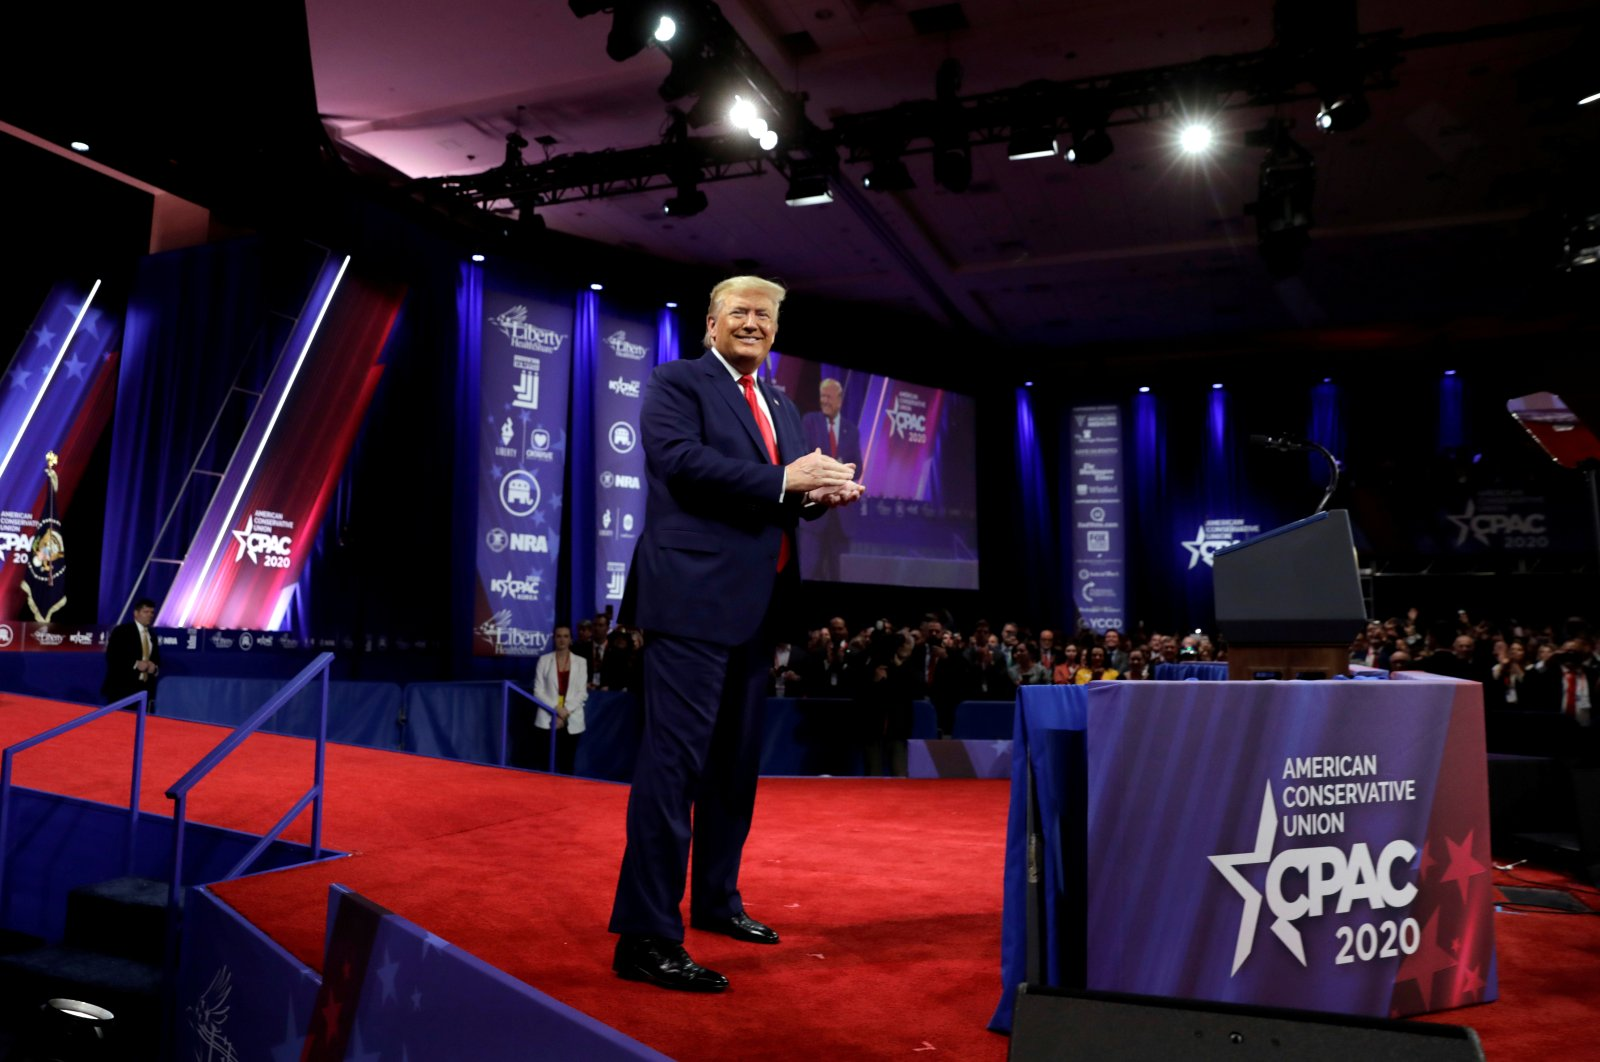 U.S. President Donald Trump arrives at the Conservative Political Action Conference (CPAC) annual meeting at National Harbor in Oxon Hill, Maryland, U.S., Feb. 29, 2020. (Reuters Photo)